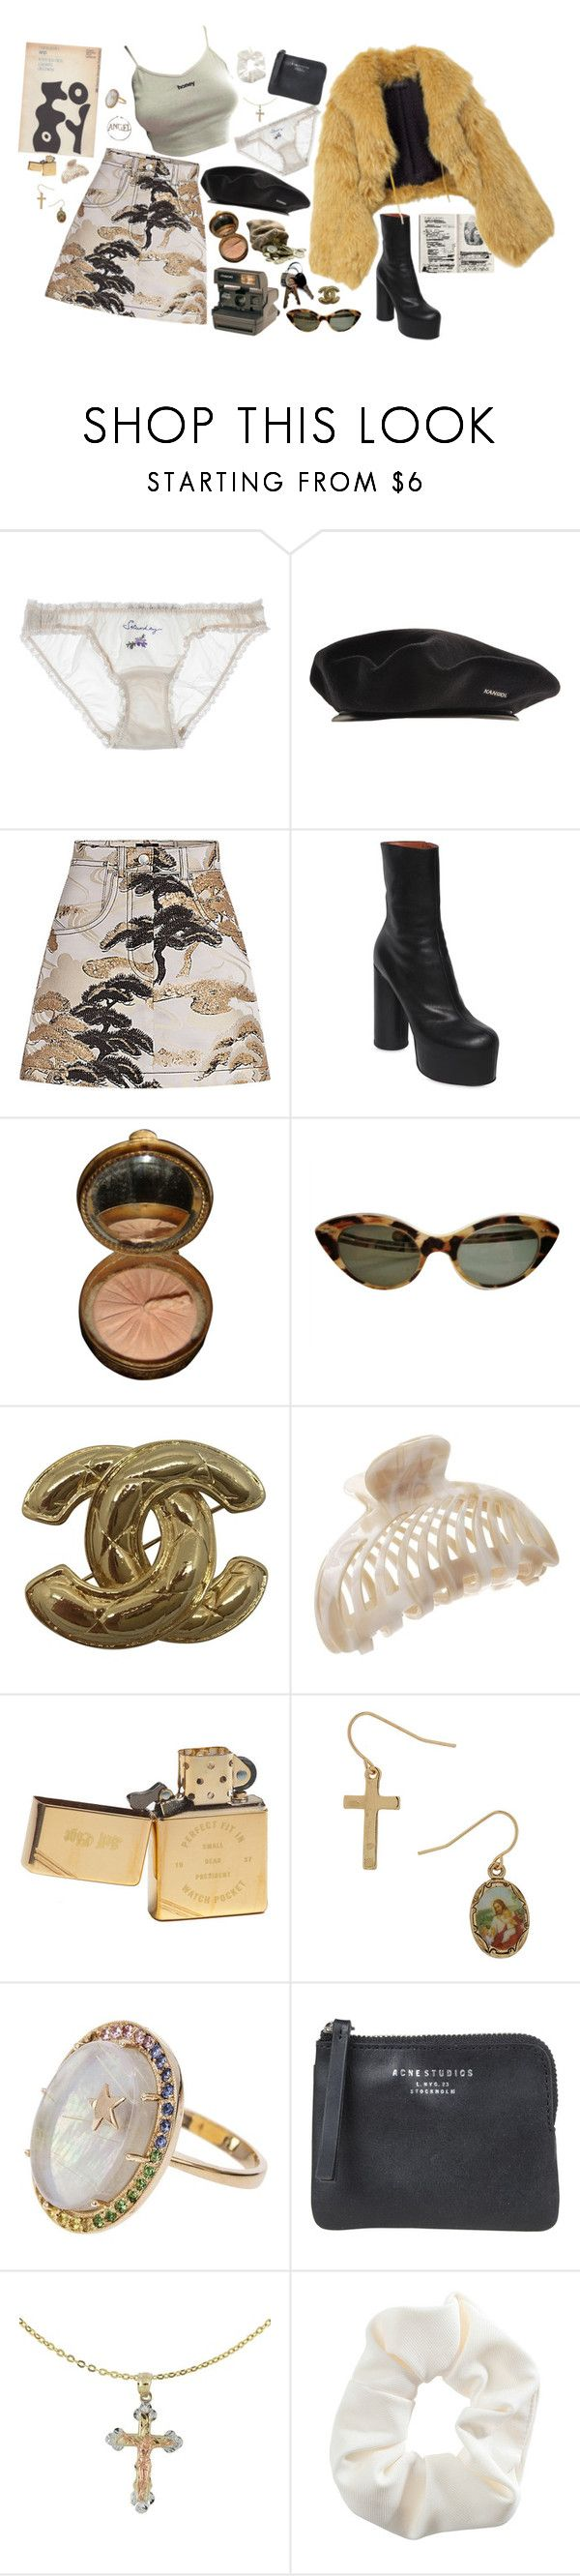 """""""material girl"""" by notacowboy ❤ liked on Polyvore featuring STELLA McCARTNEY, kangol, Louis Vuitton, Vetements, Gucci, Polaroid, Chanel, France Luxe, Zippo and Andrea Fohrman"""